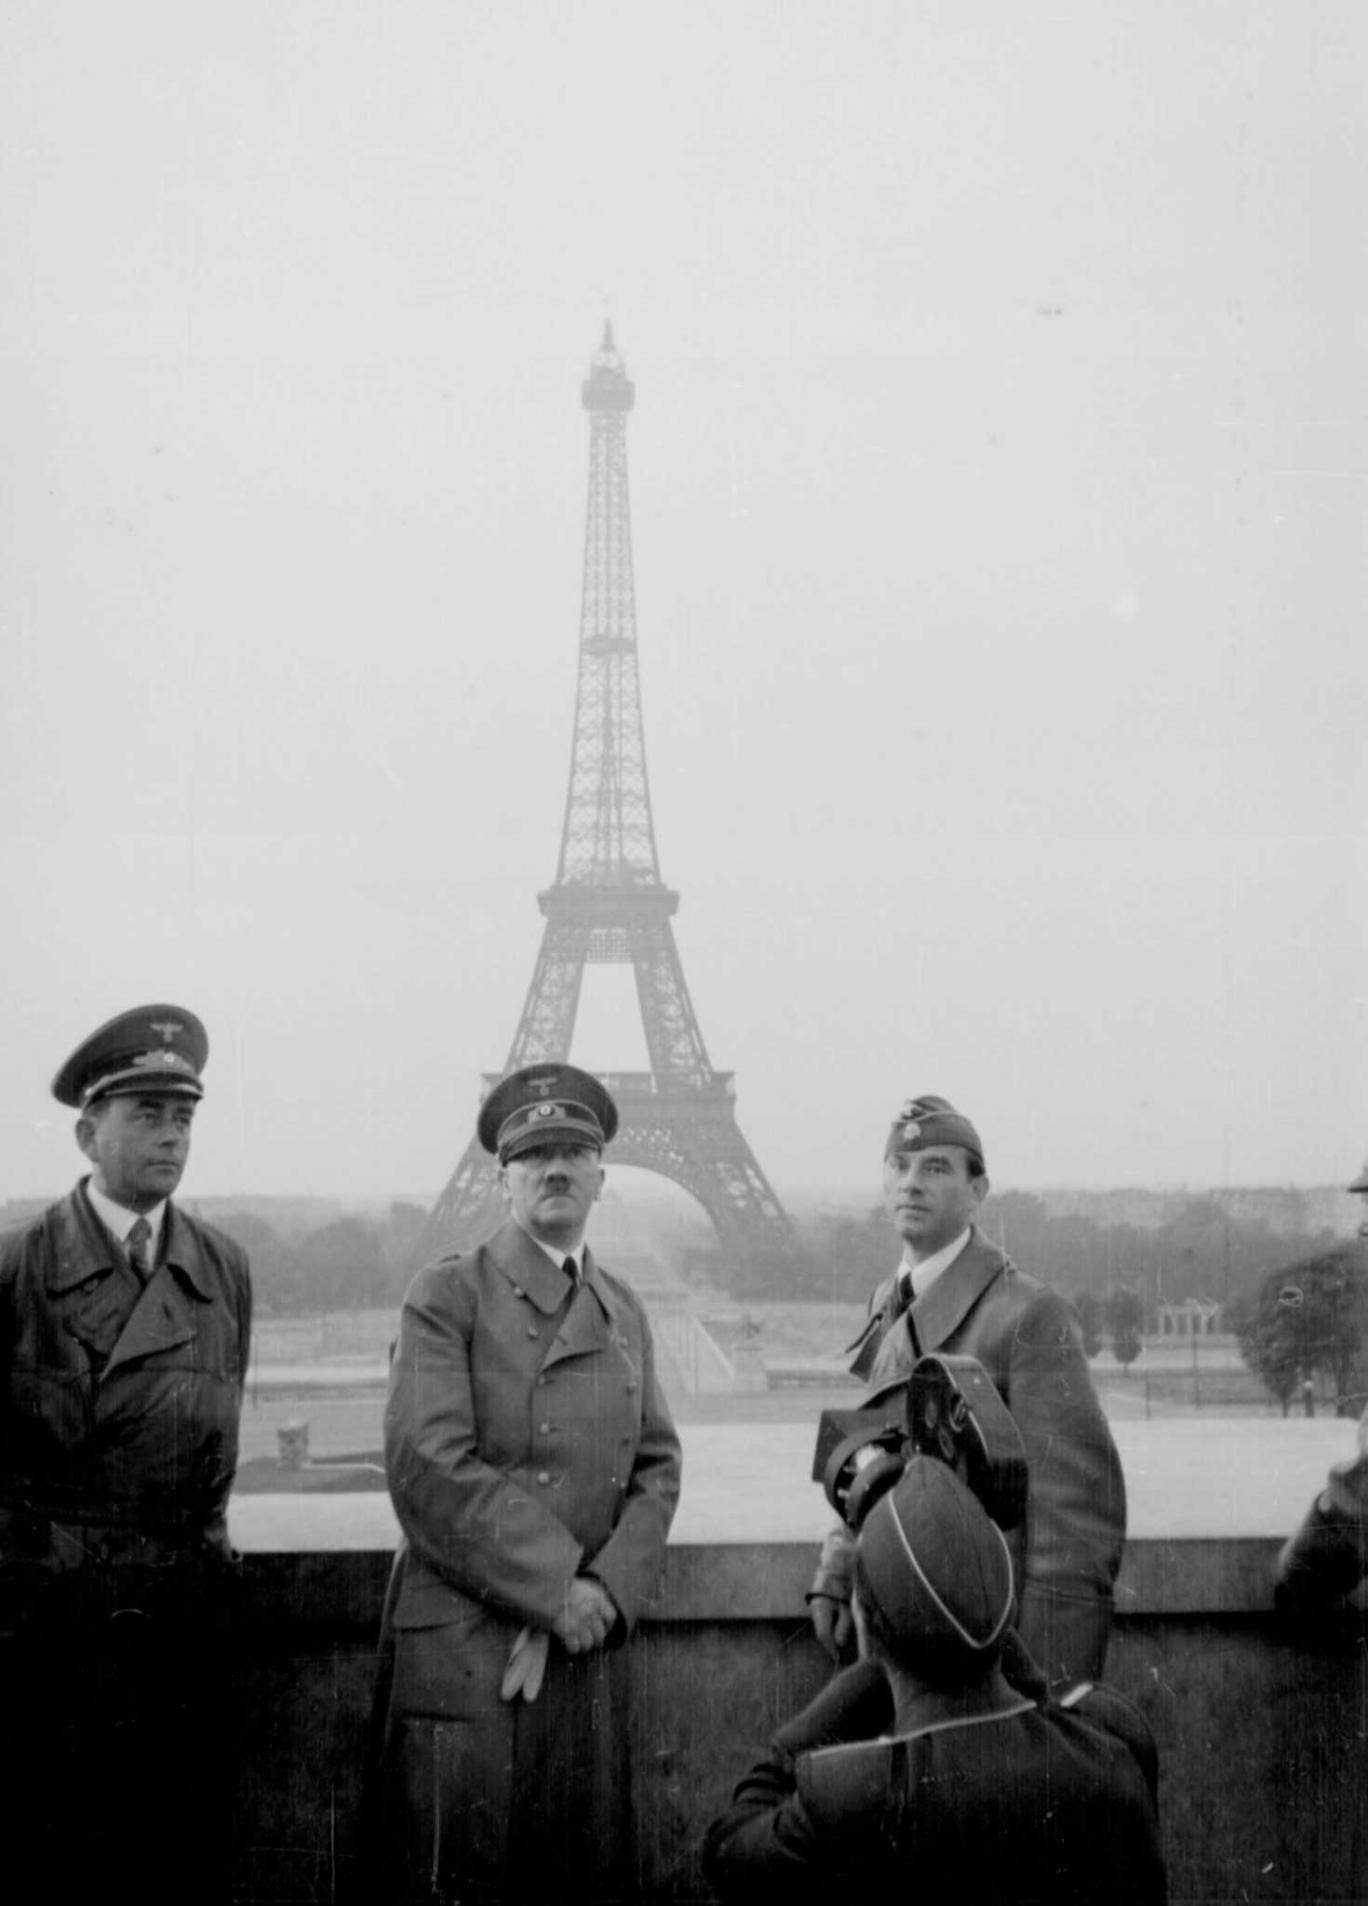 Hitler in Paris in 1940, soon after the German invasion